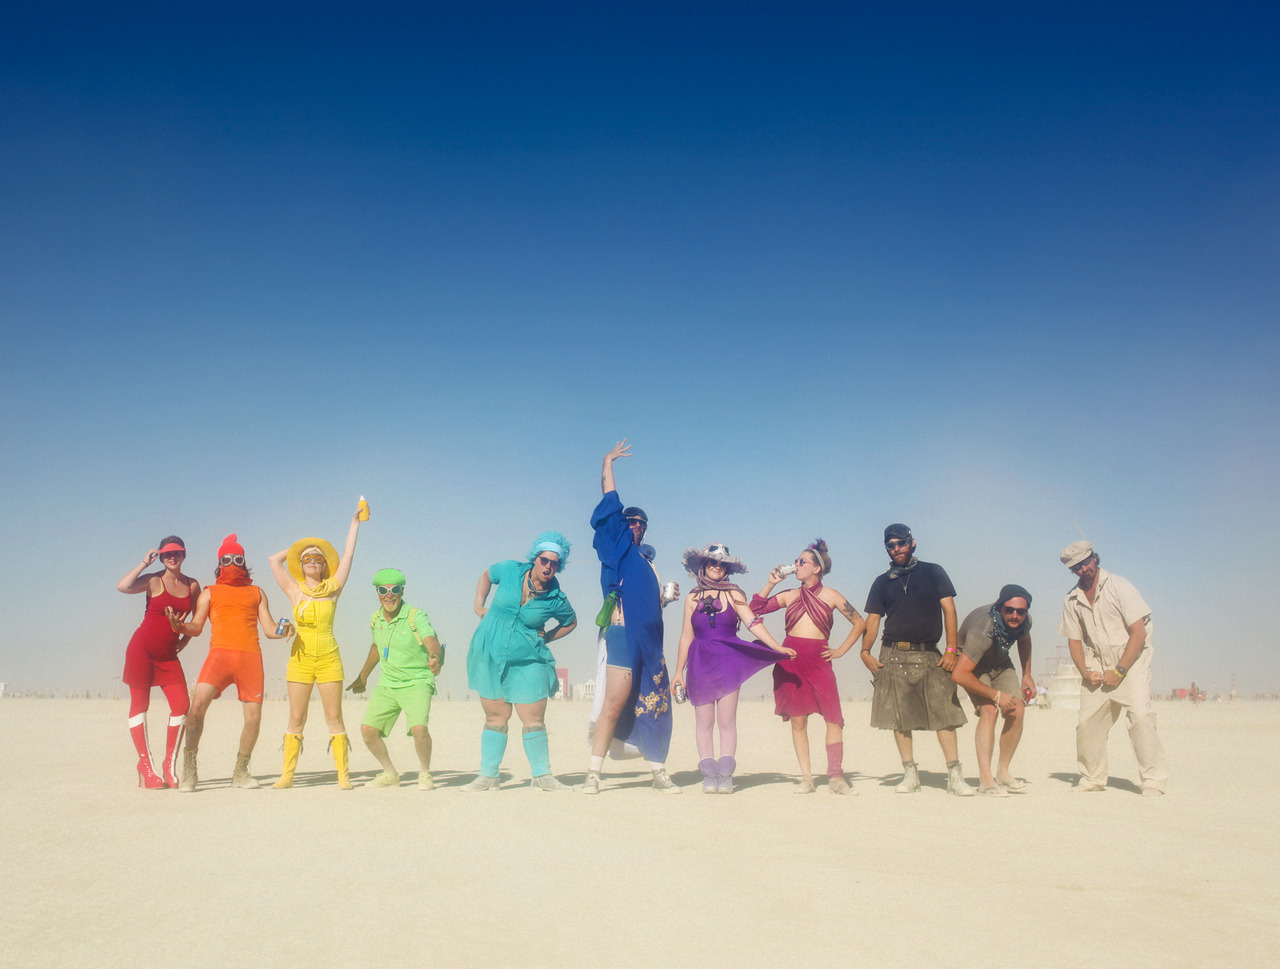 R Camp is better than Your Camp! Planning things at Burning Man is hard, but when I asked my campmates this year to pick a color so we could run around all day shooting rainbow photos - all expectations were exceeded, and together we had one of my favorite days in Black Rock City yet.  ROYGBIV, CMYK, and Greyscale. These are my best friends, and this is how we play.  ©Lauren Randolph